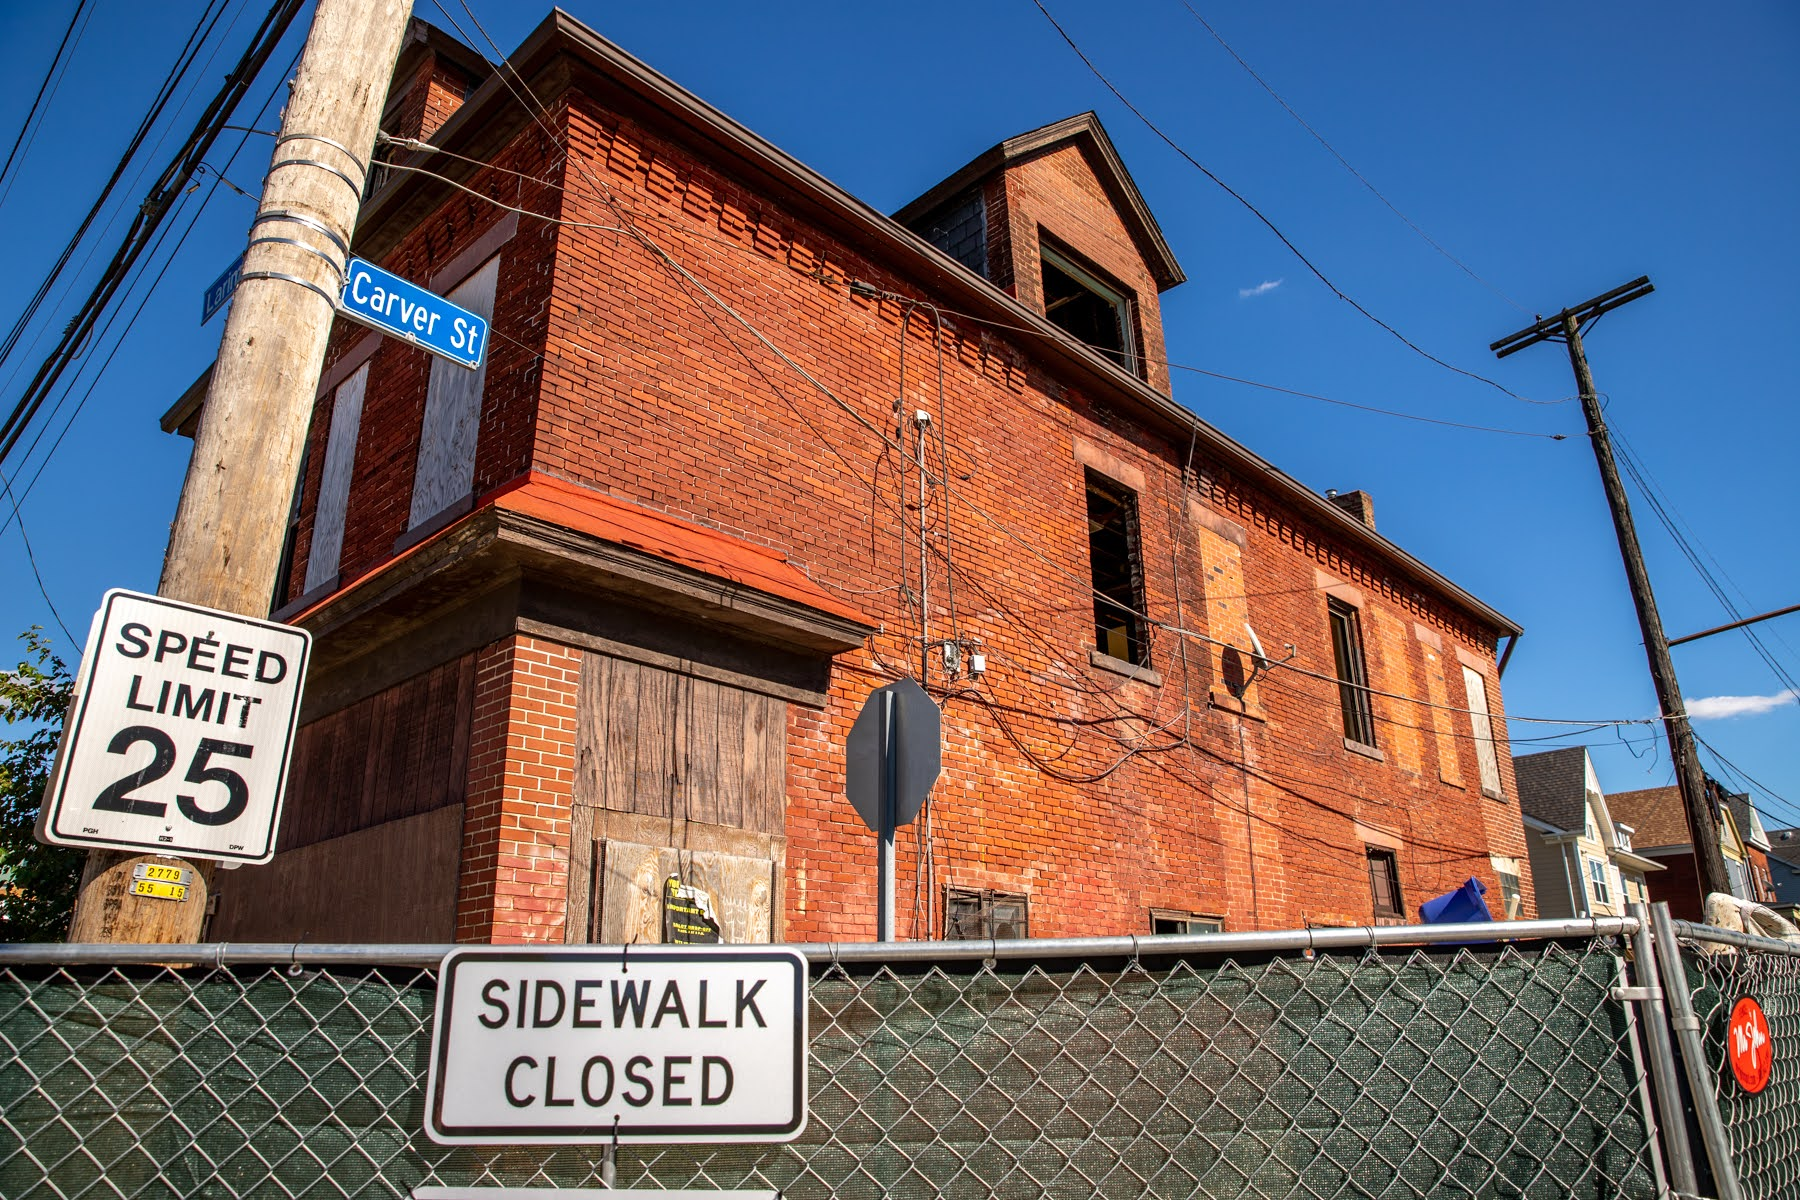 """Formerly known as """"the dog house,"""" this building on Larimer Avenue is under renovation, and may house a coffee shop with pastries in the future. (Photo by Kaycee Orwig/PublicSource)"""